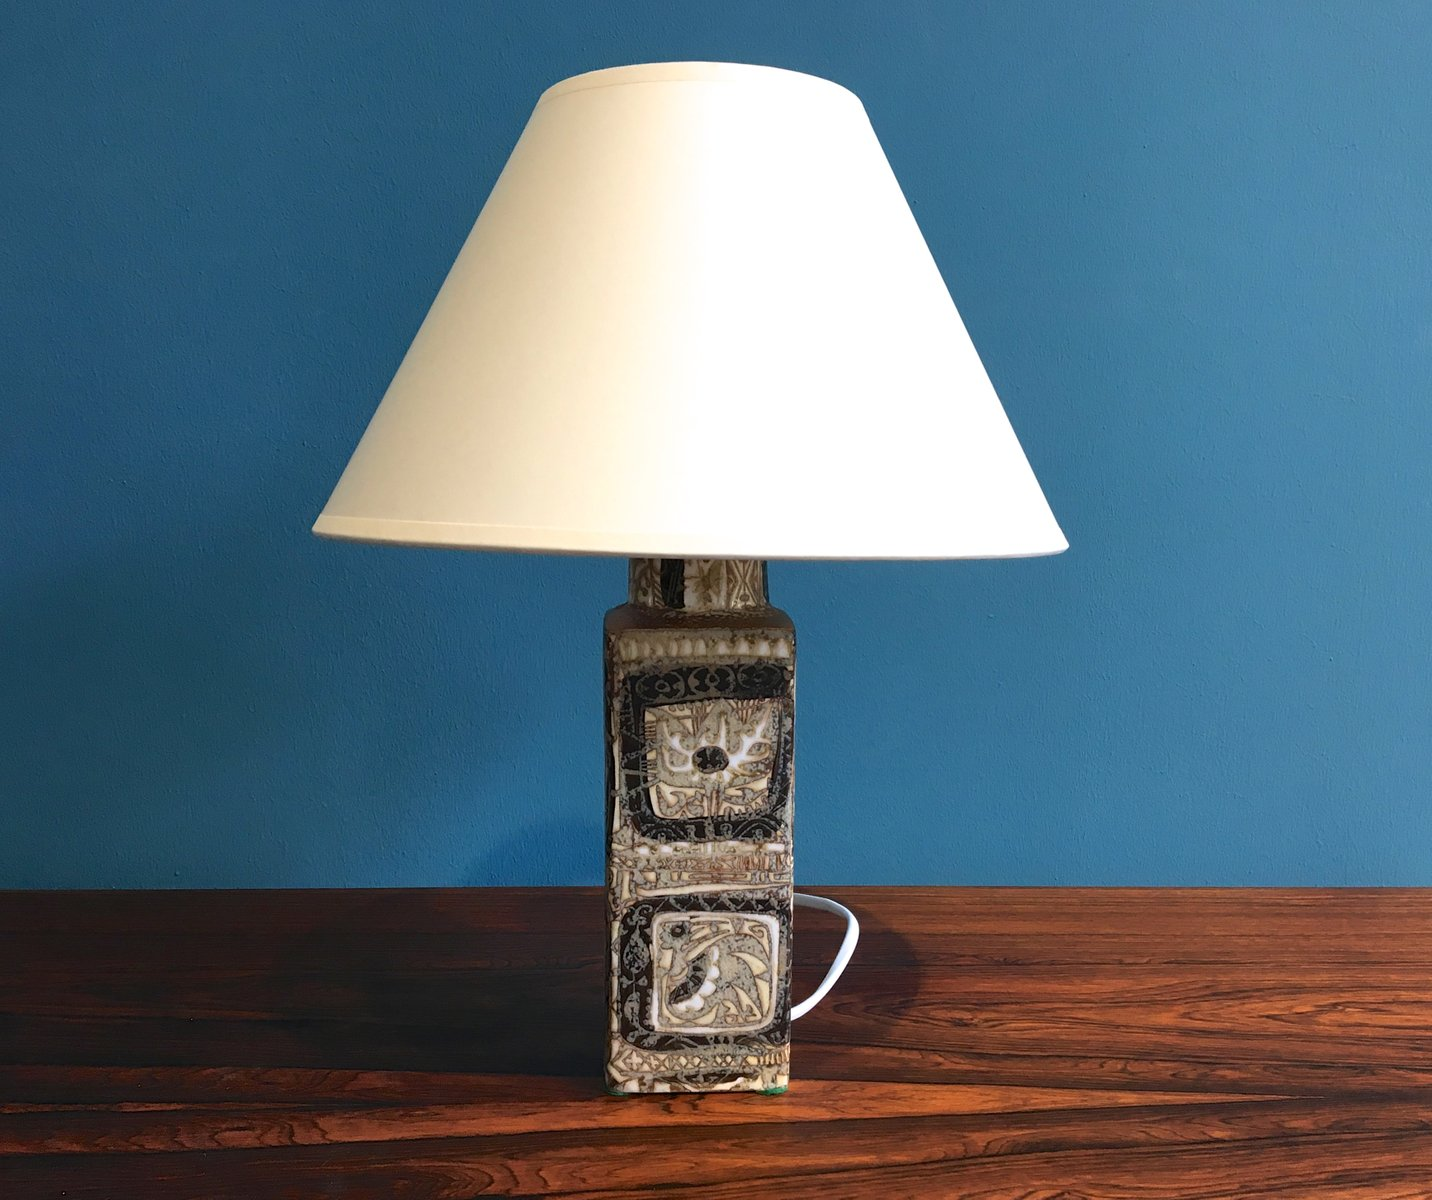 Royal blue table lamp - Baca Table Lamp By Nils Thorsson For Royal Copenhagen 1960s